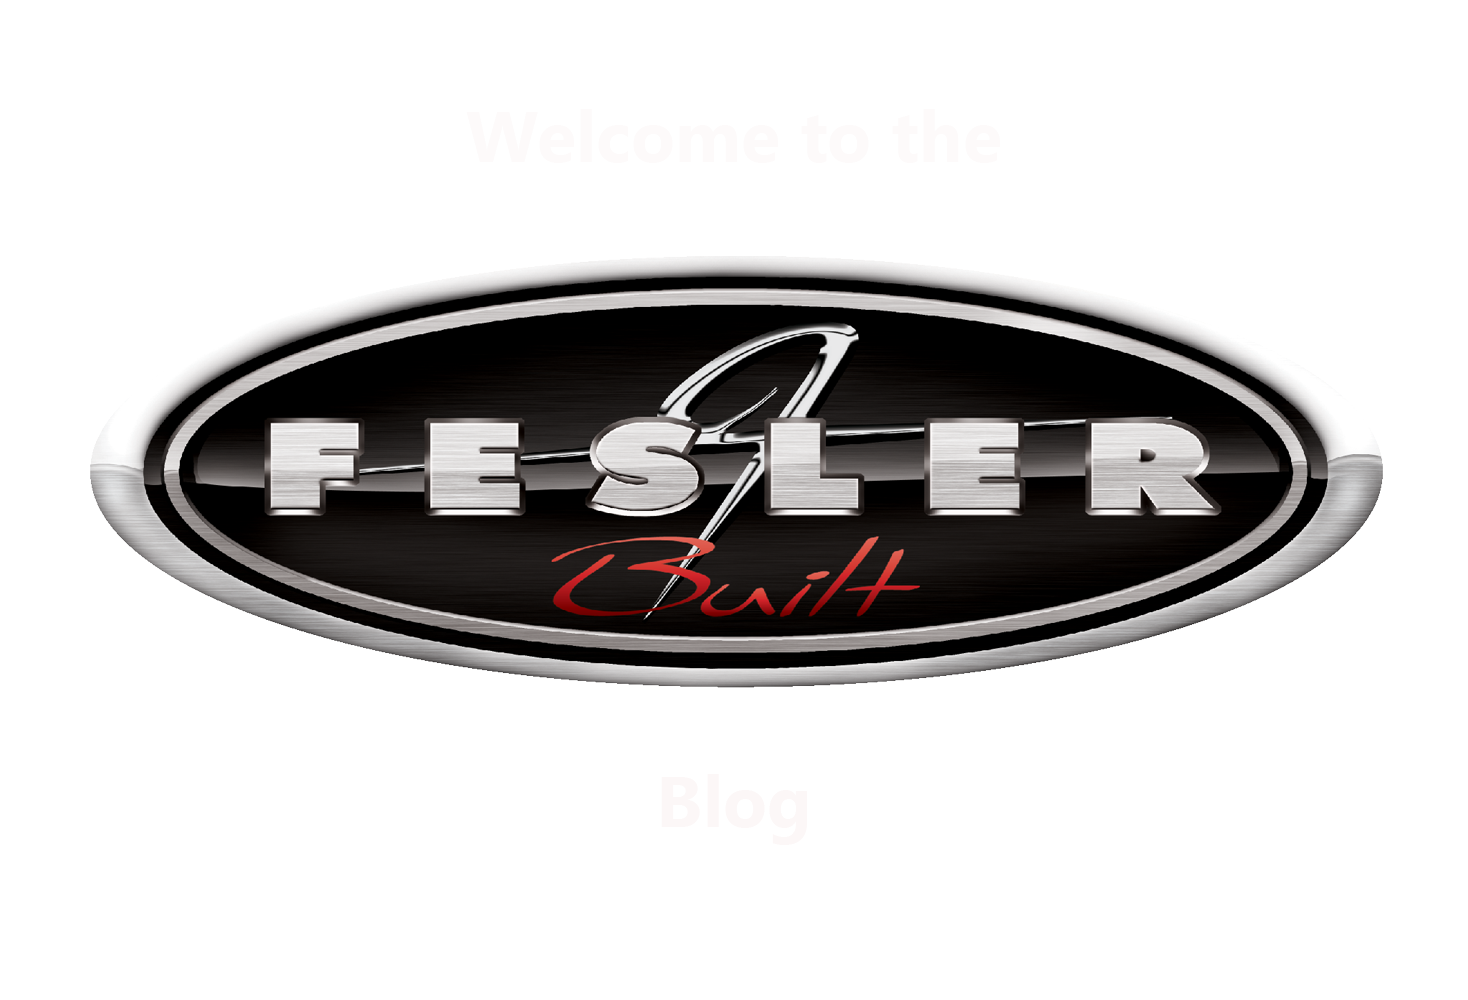 The Fesler Built Blog - where things get real fast!